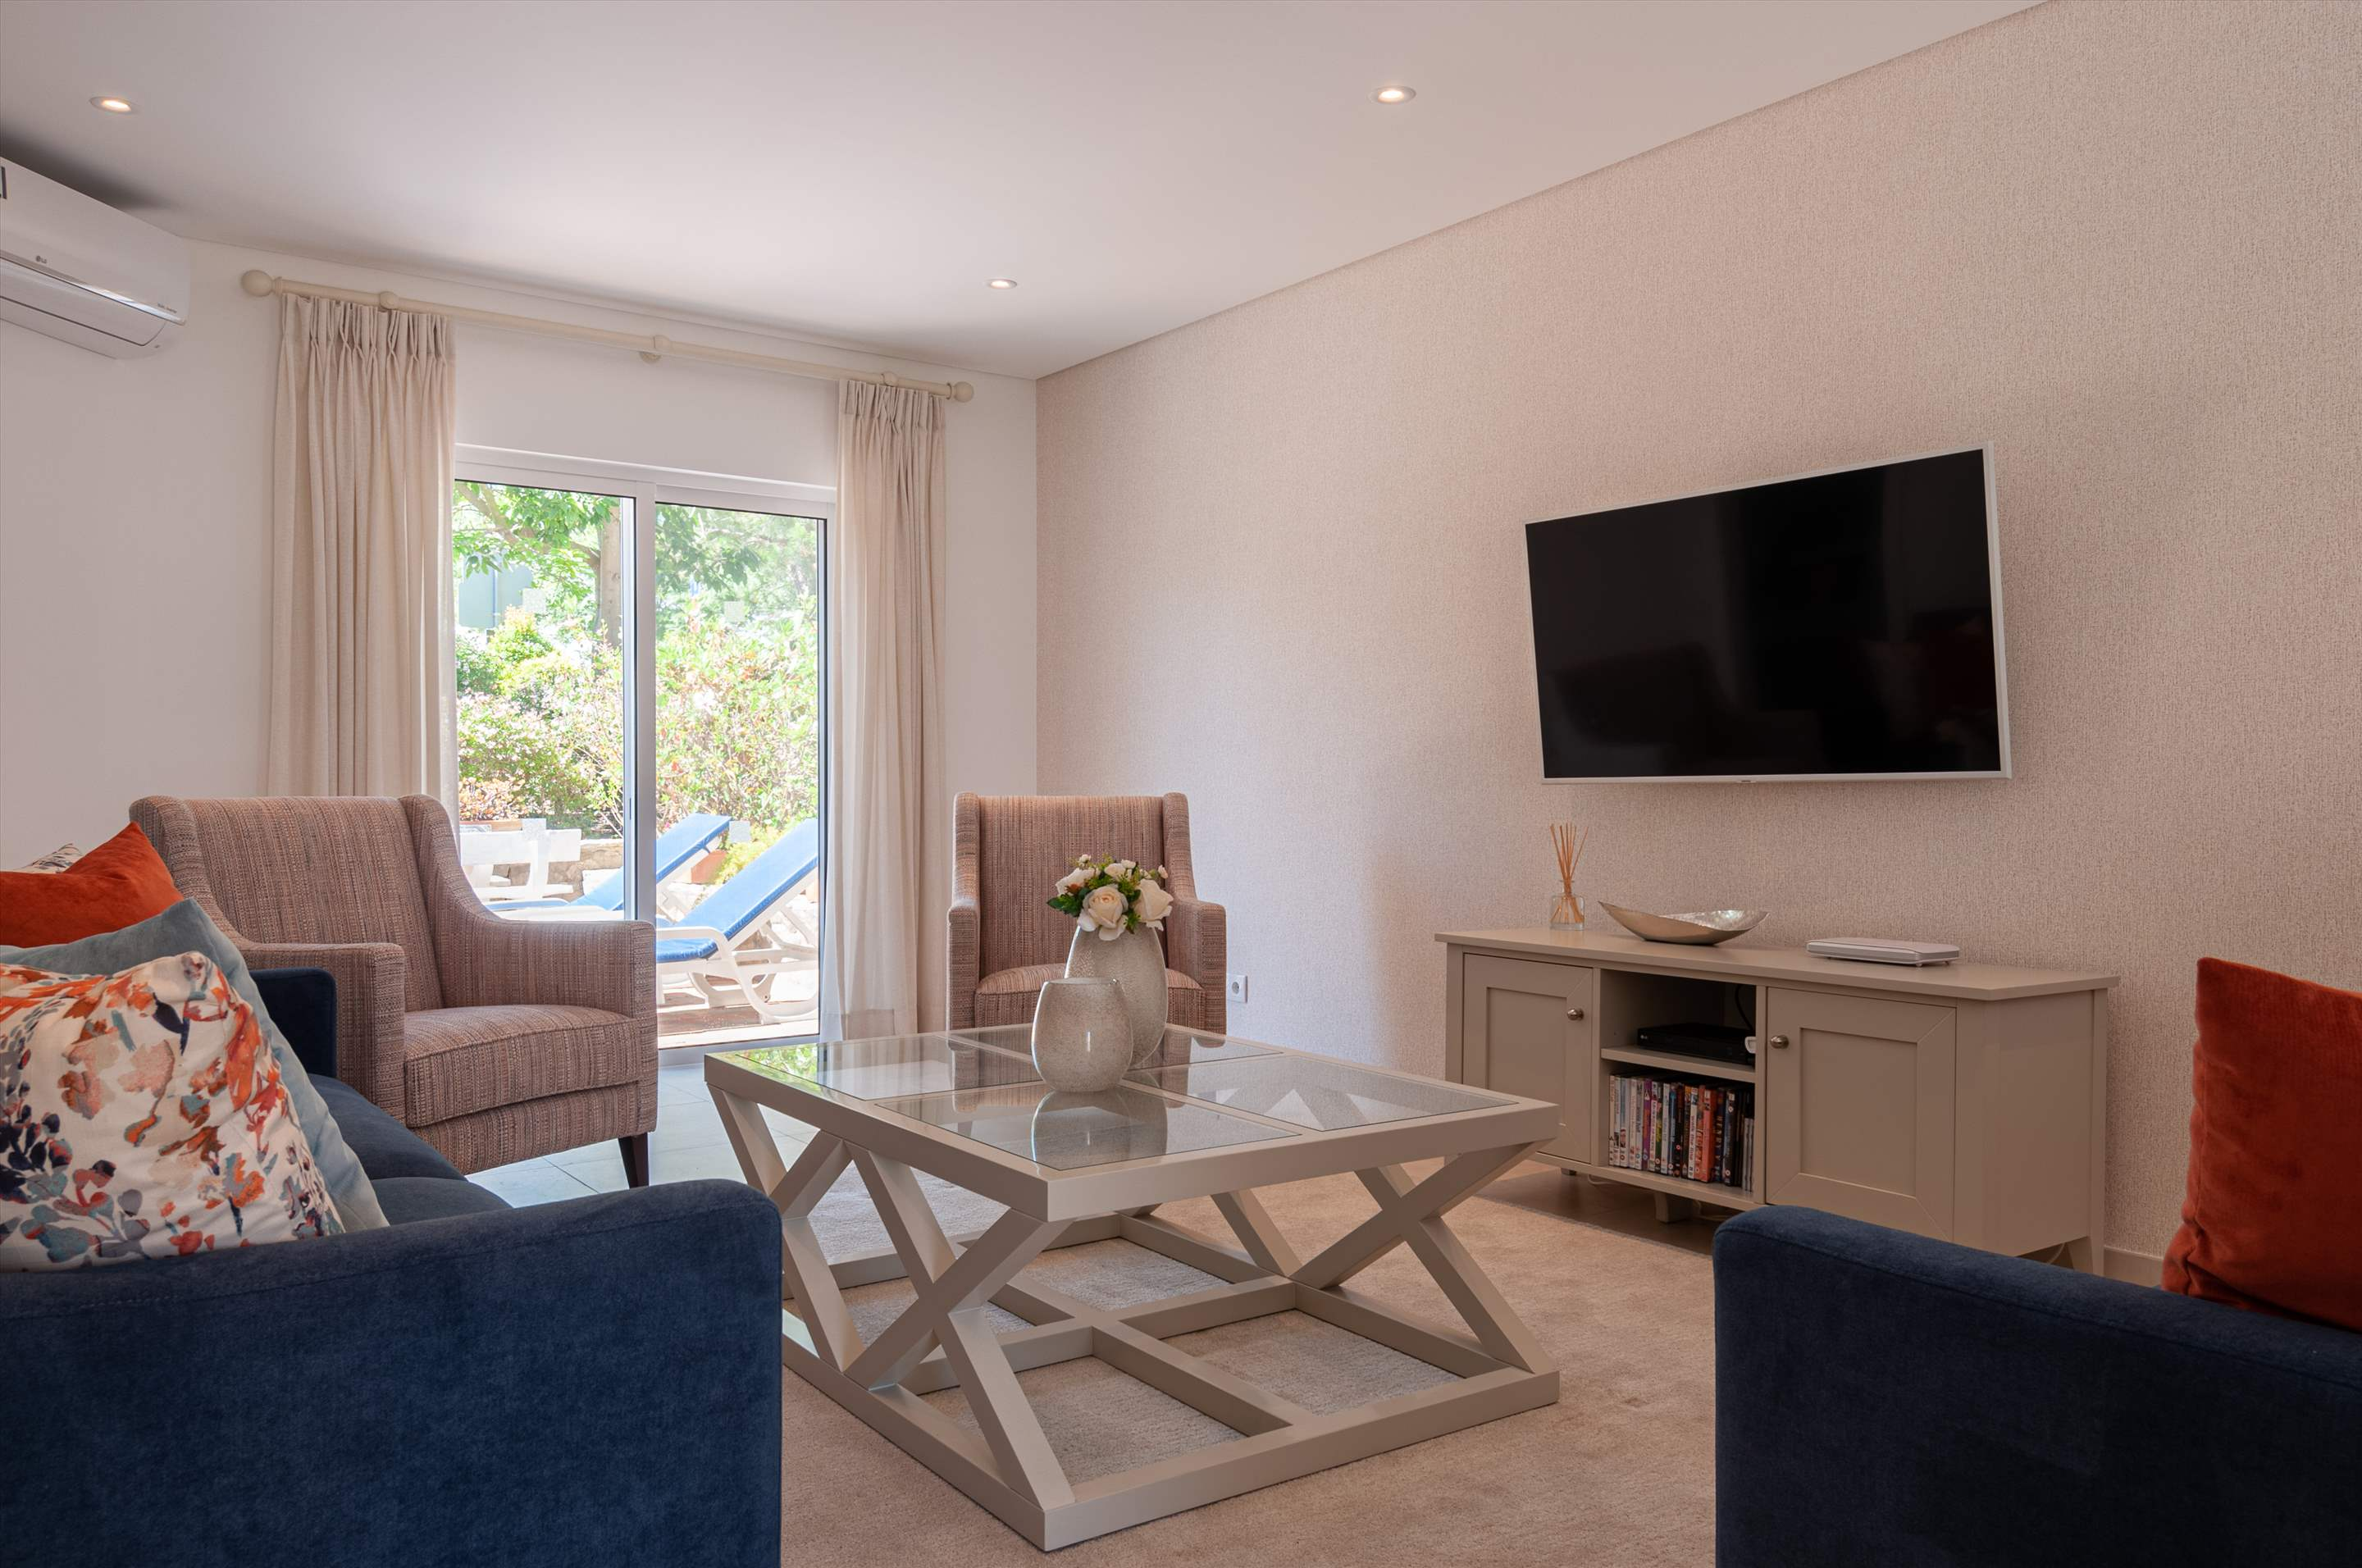 Villa Carmo, 3 bedroom villa in Vale do Lobo, Algarve Photo #6